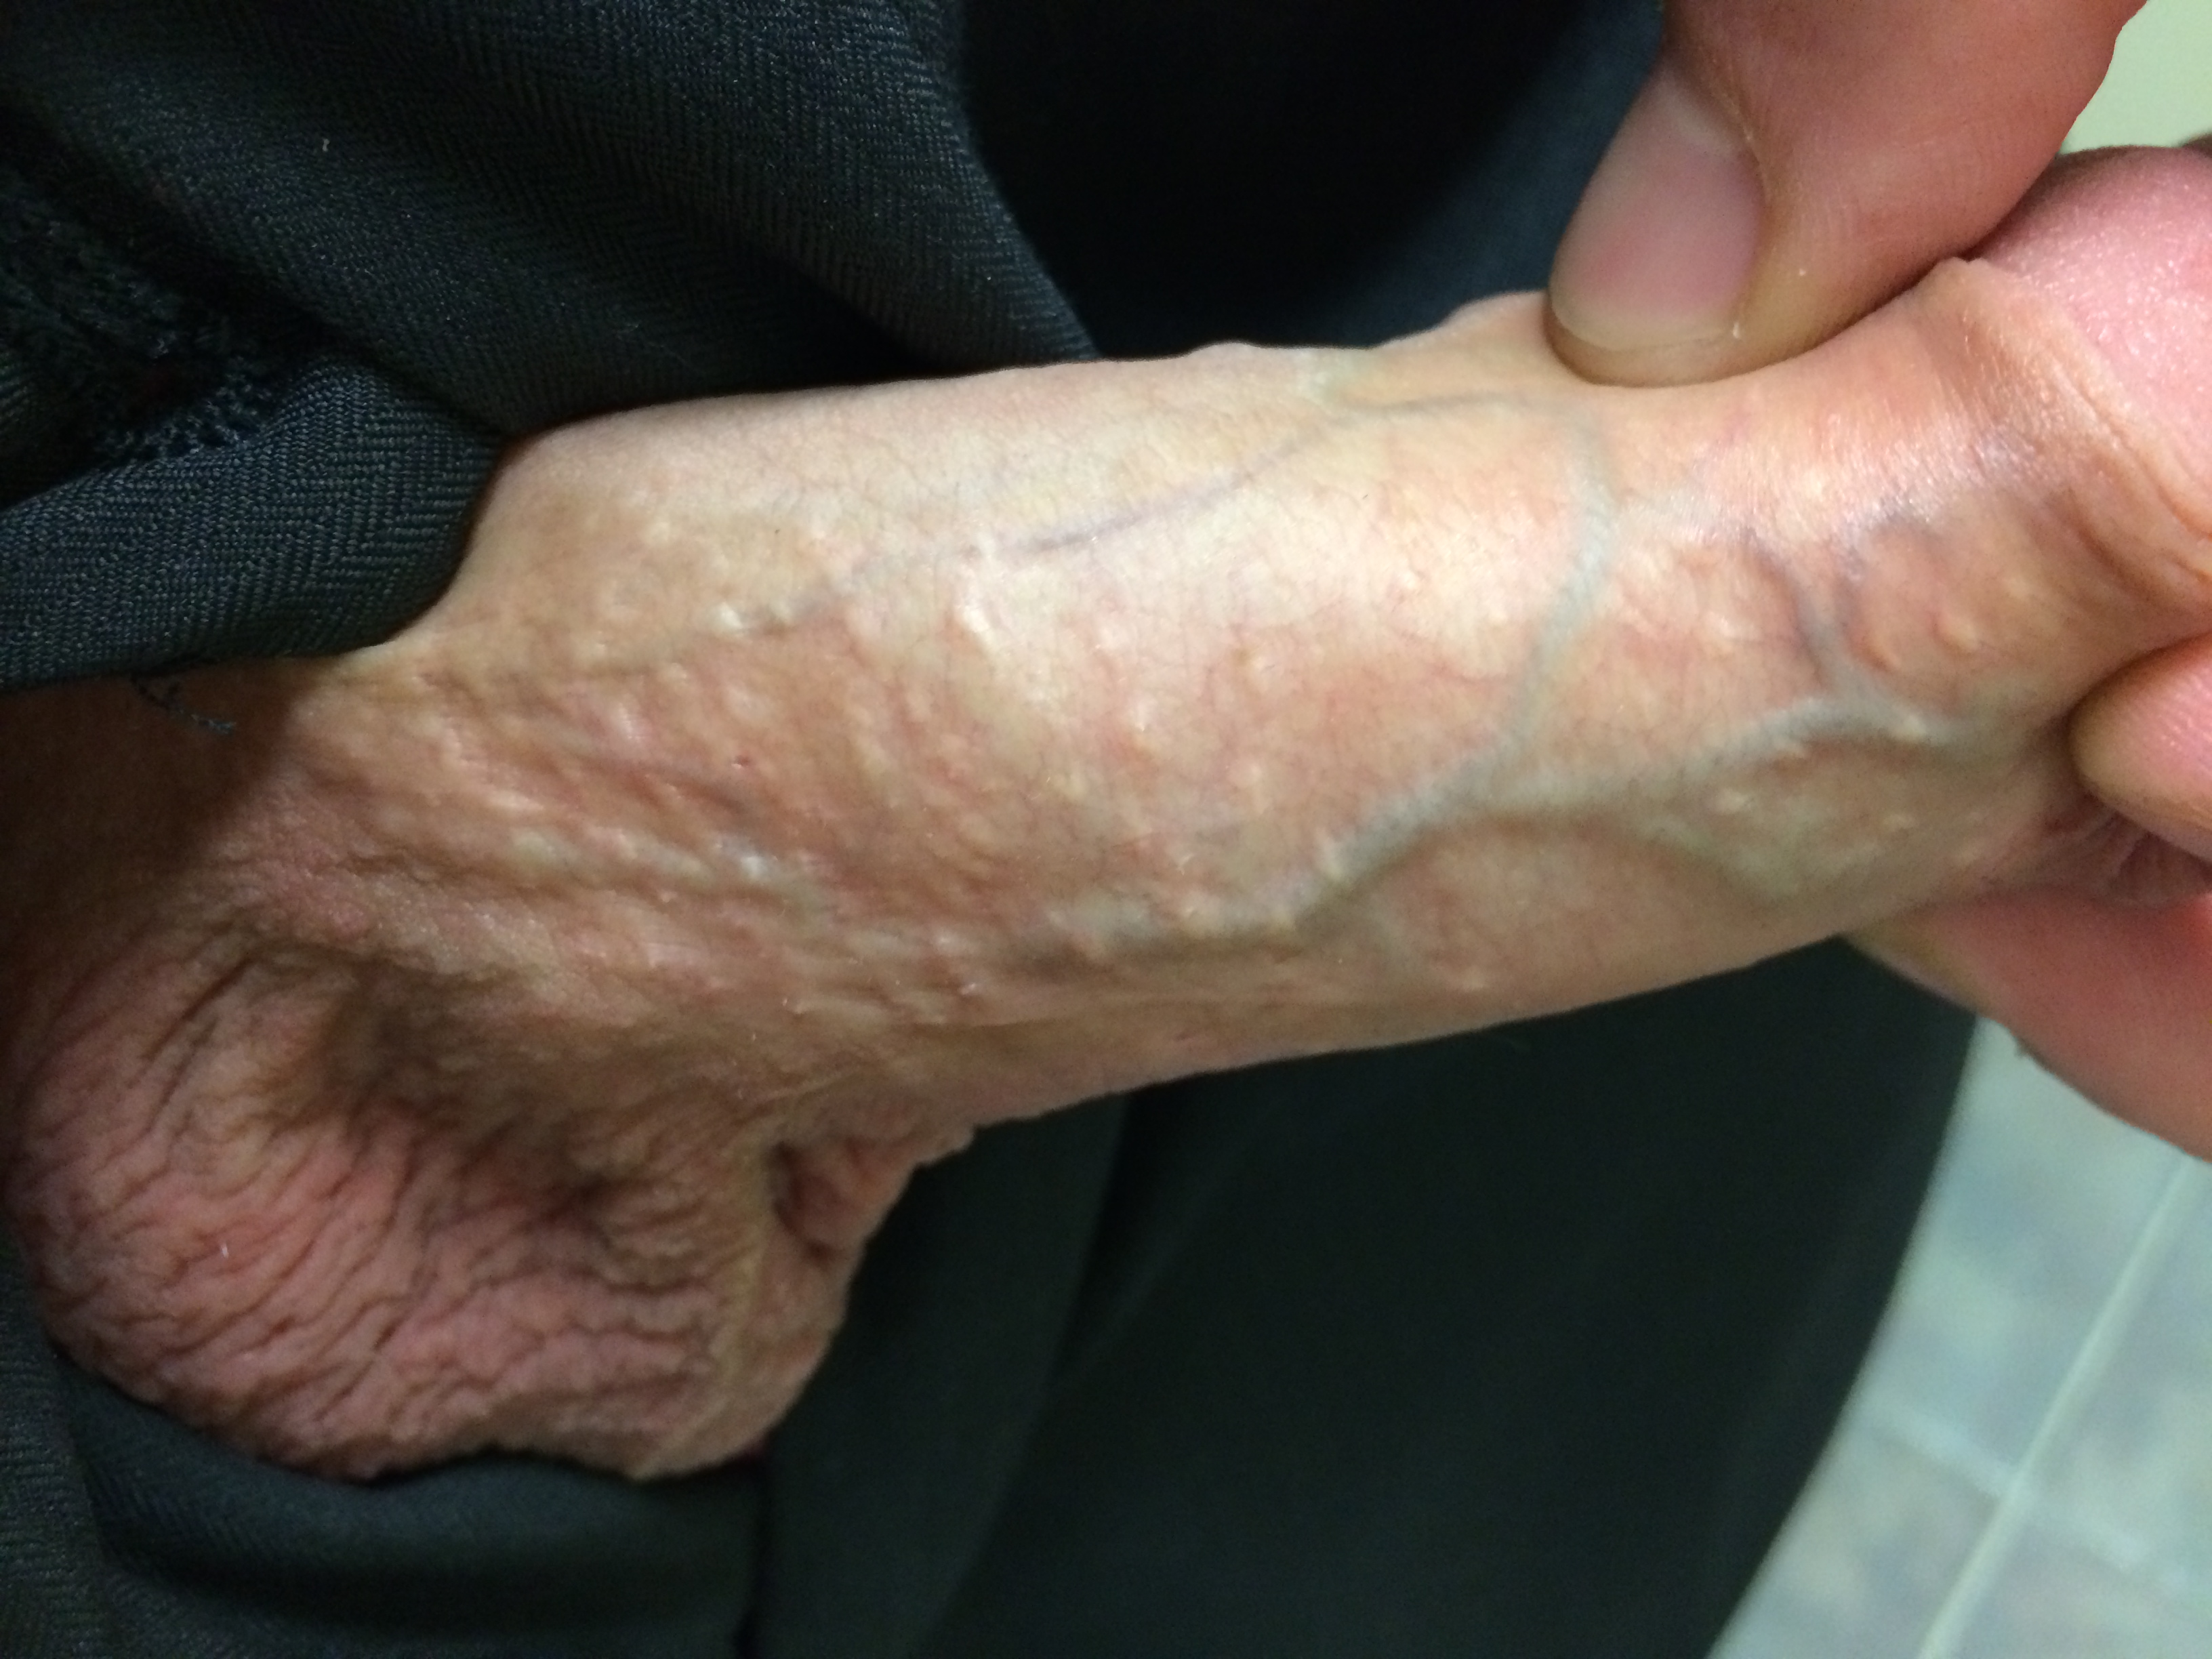 Flat Red Spot On Penis 118